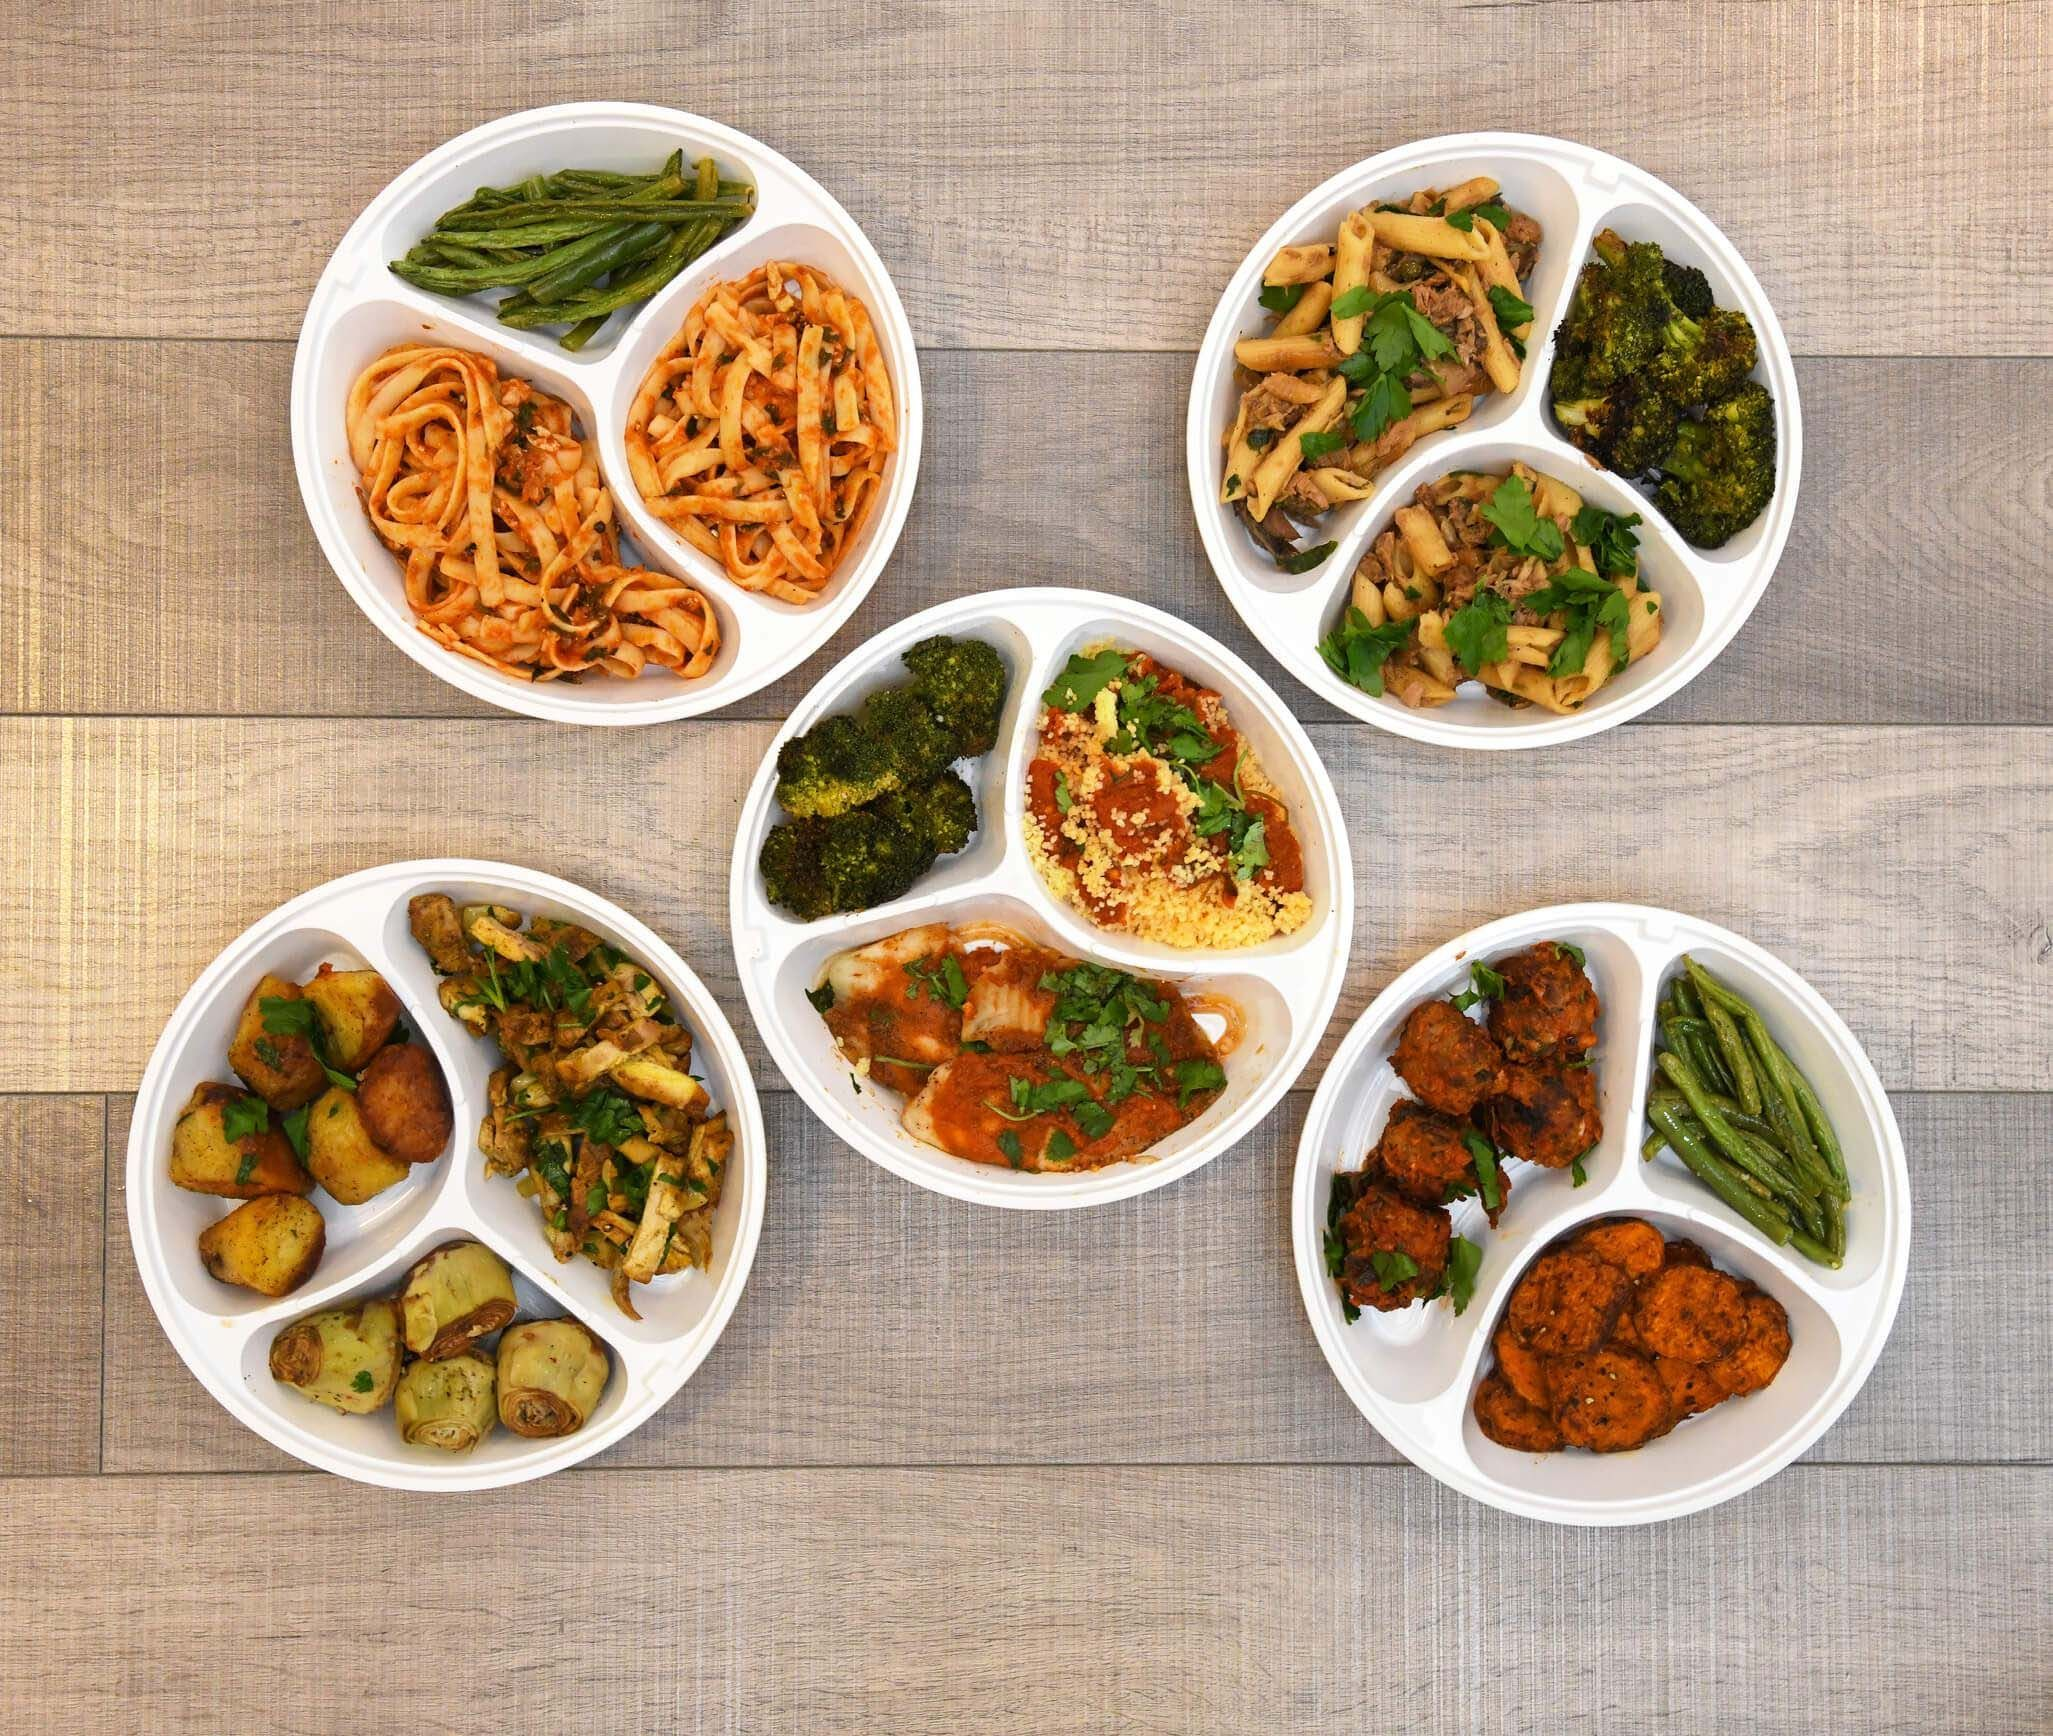 Prepared Meals Delivery Meal Delivery Service Ideas Of Meal Delivery Service Mealdelivery In 2020 Healthy Prepared Meals Prepared Meal Delivery Food Preparation